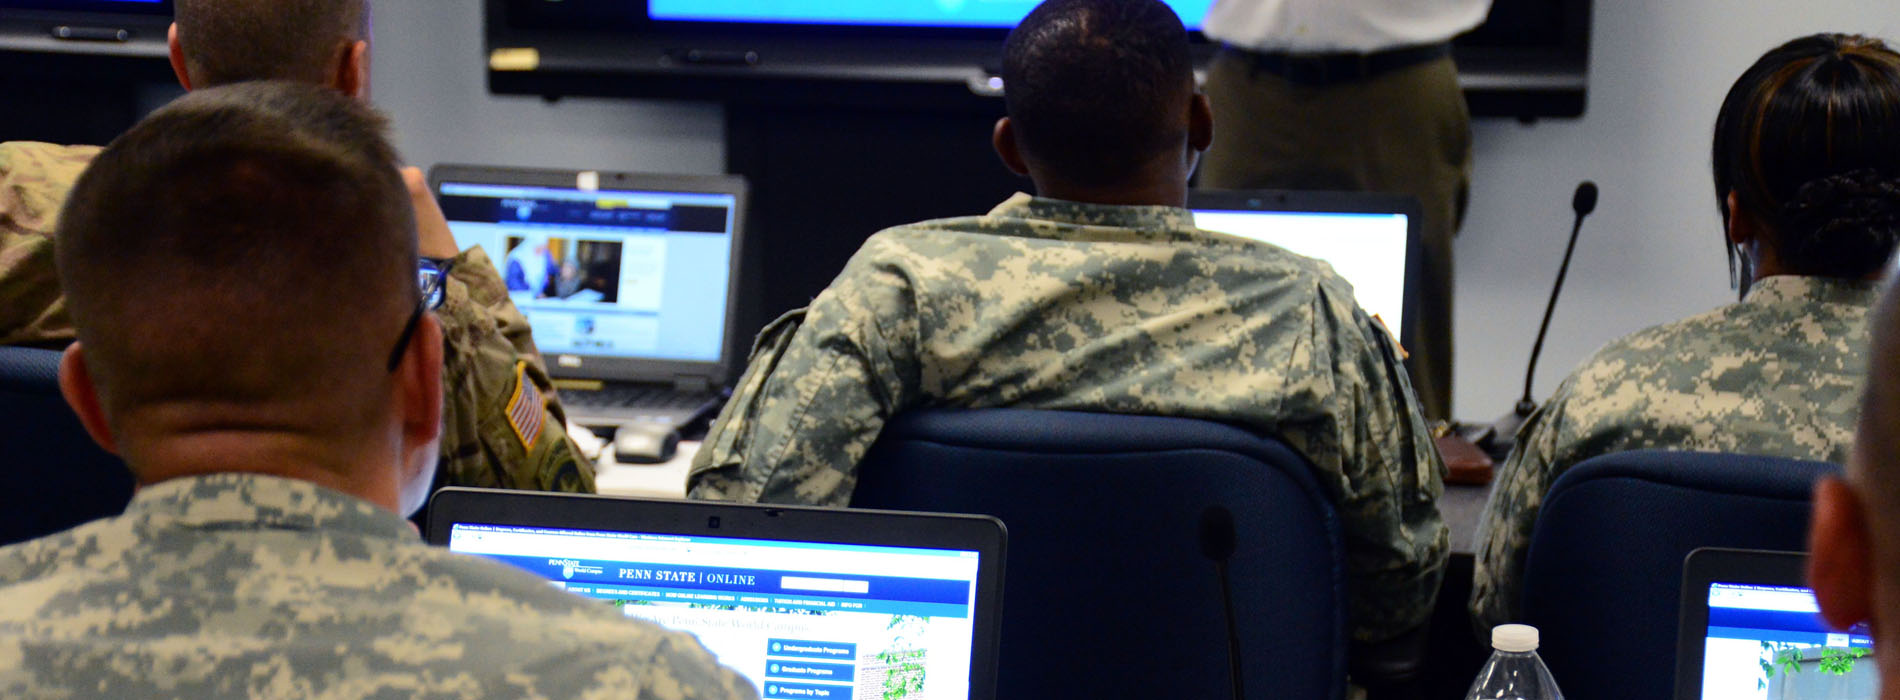 Men and women in uniform sit at computers, listening to instructor